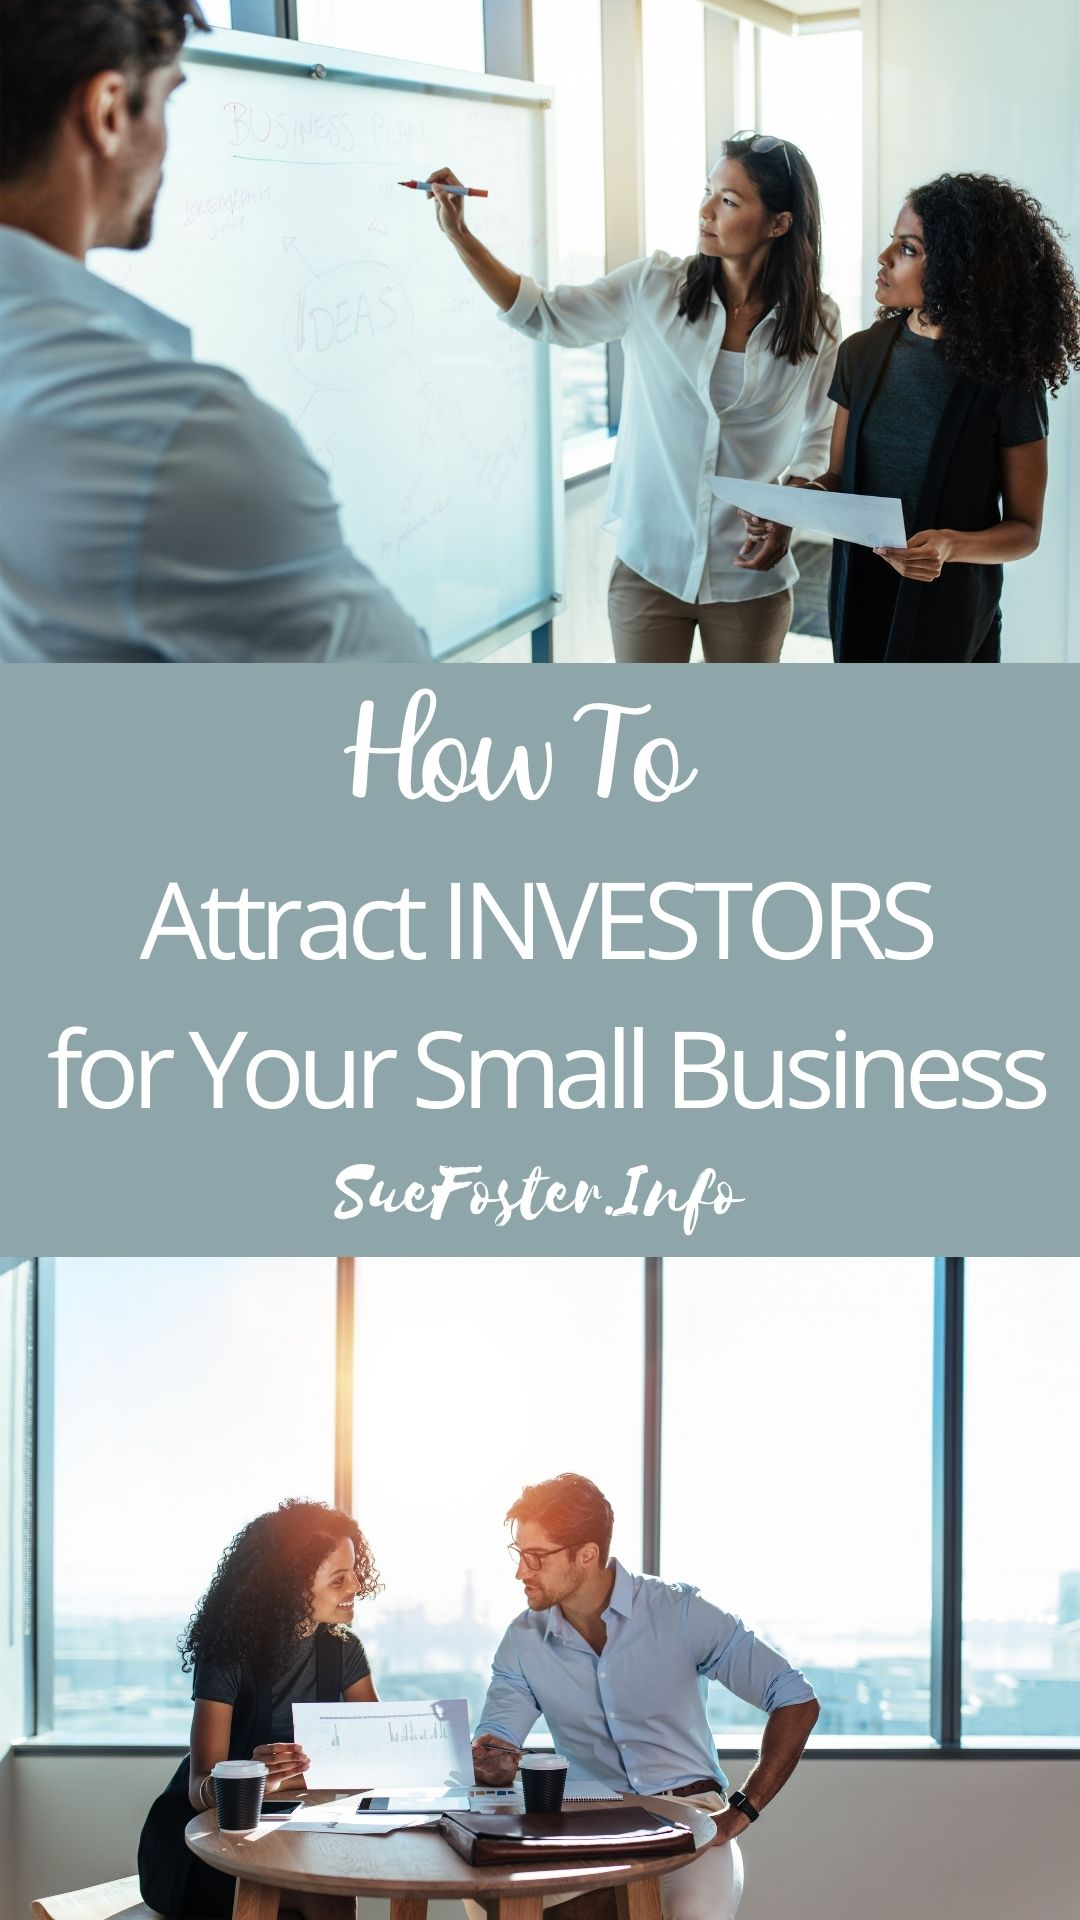 Here are some quick and comprehensive tips on how you can attract new investors to your small business.